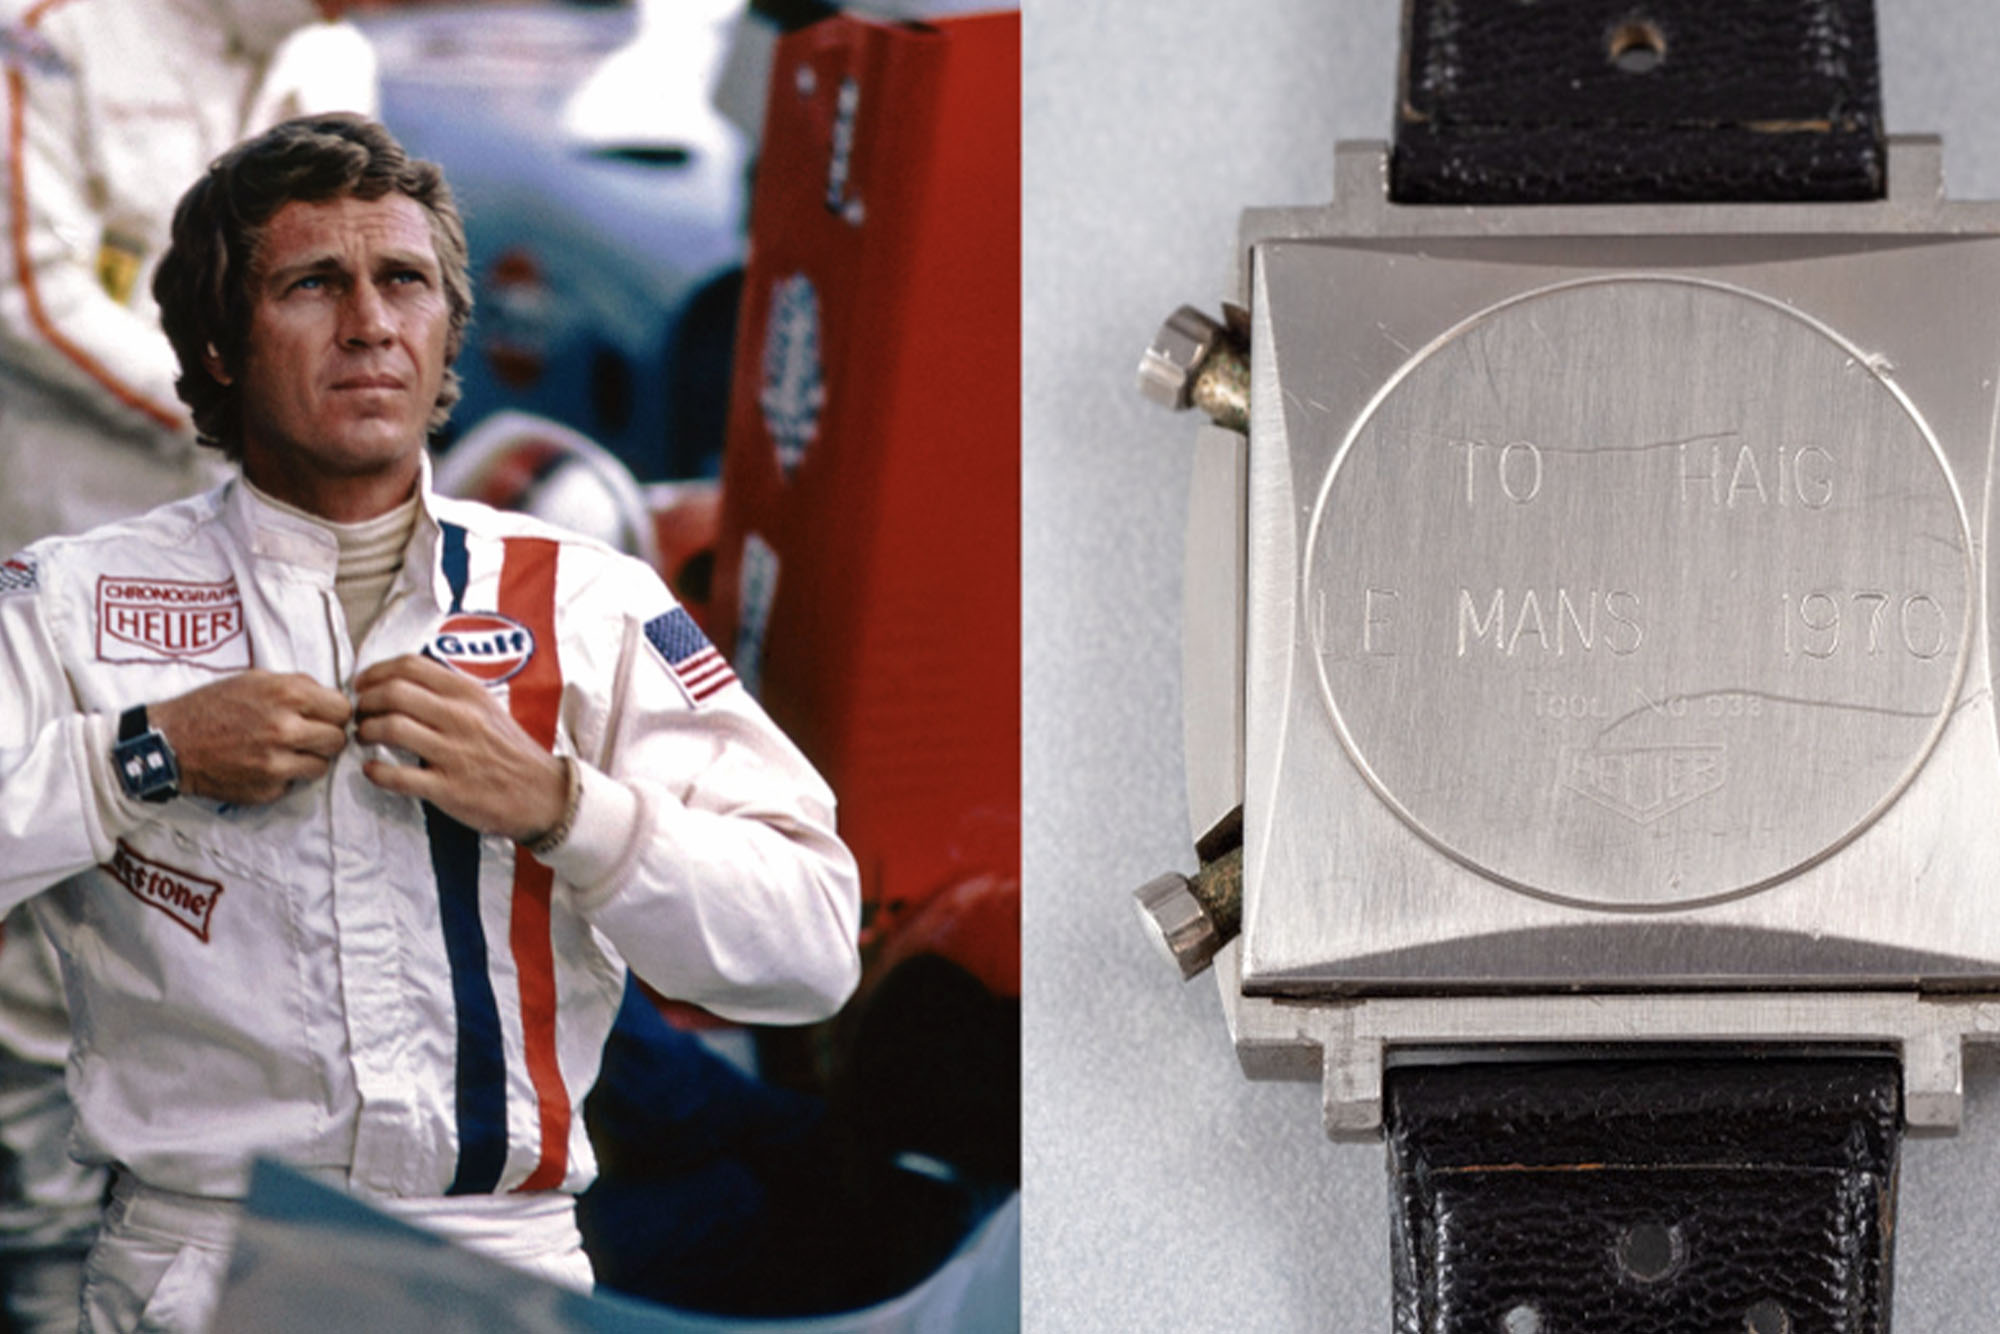 Steve Mcqueen and Heuer Monaco Inscription